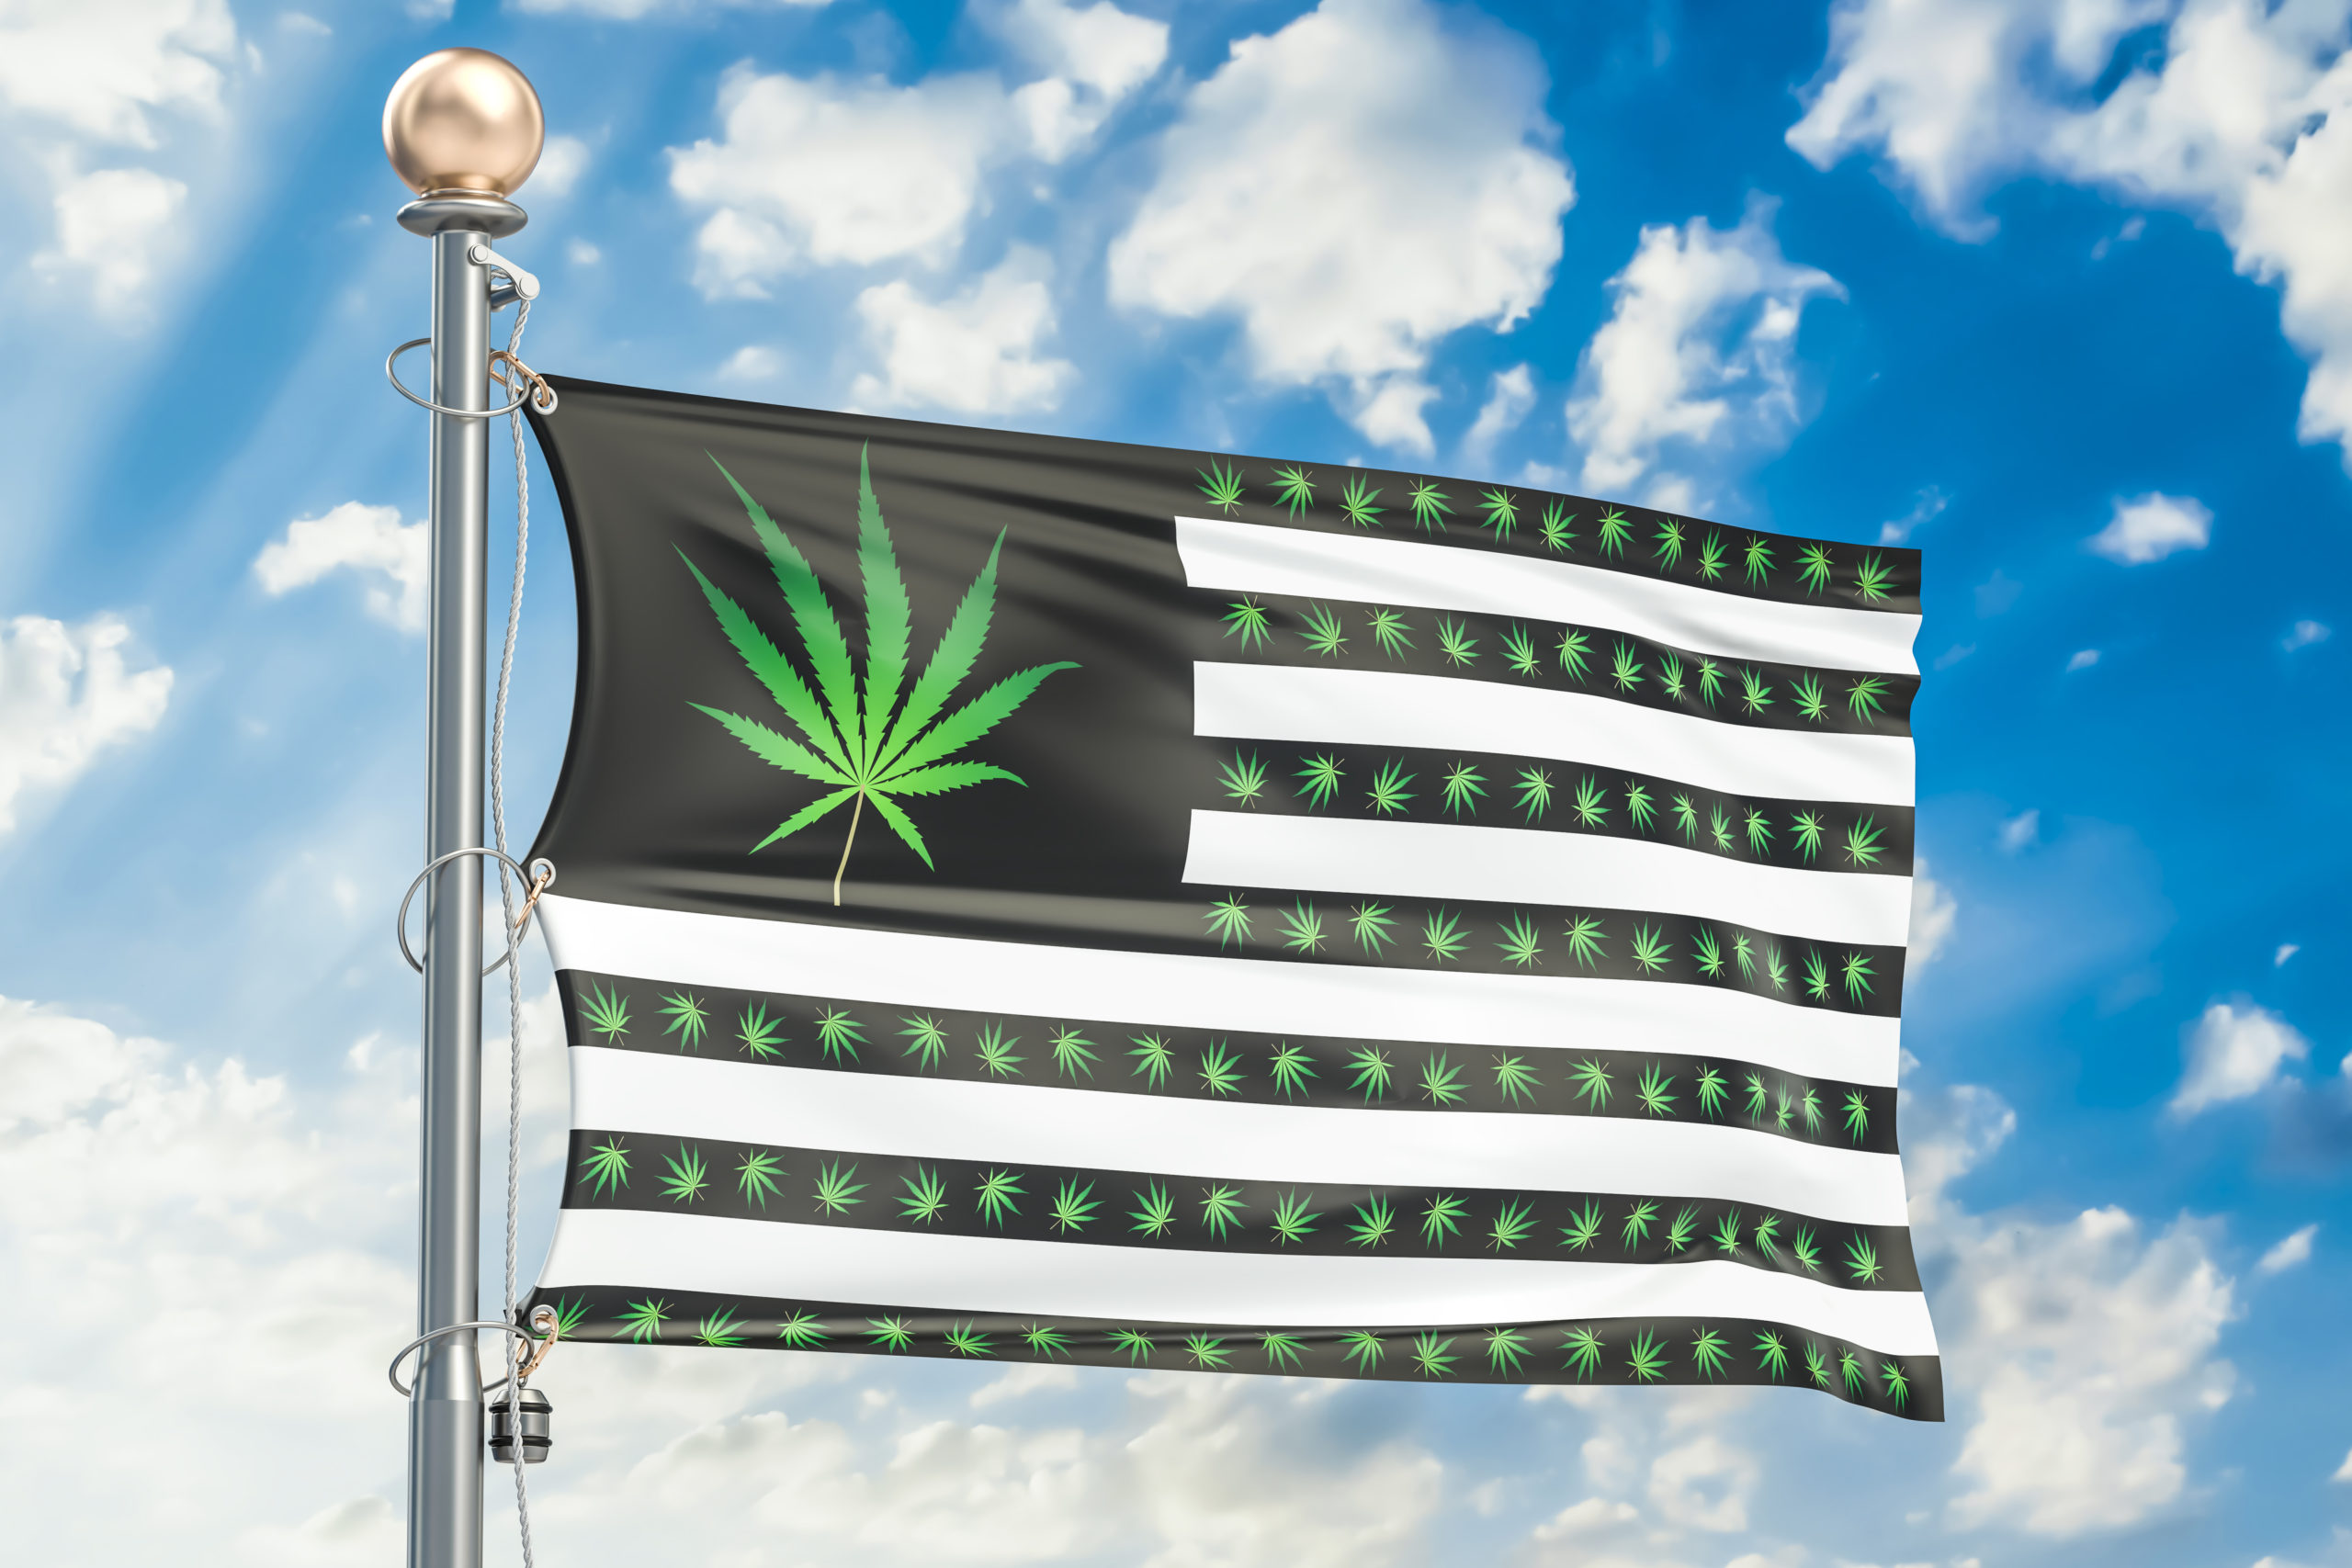 norml publishes open letter presidential candidates pledge marijuana reform featured scaled - NORML Publishes Open Letter To Presidential Candidates To Pledge Marijuana Reform